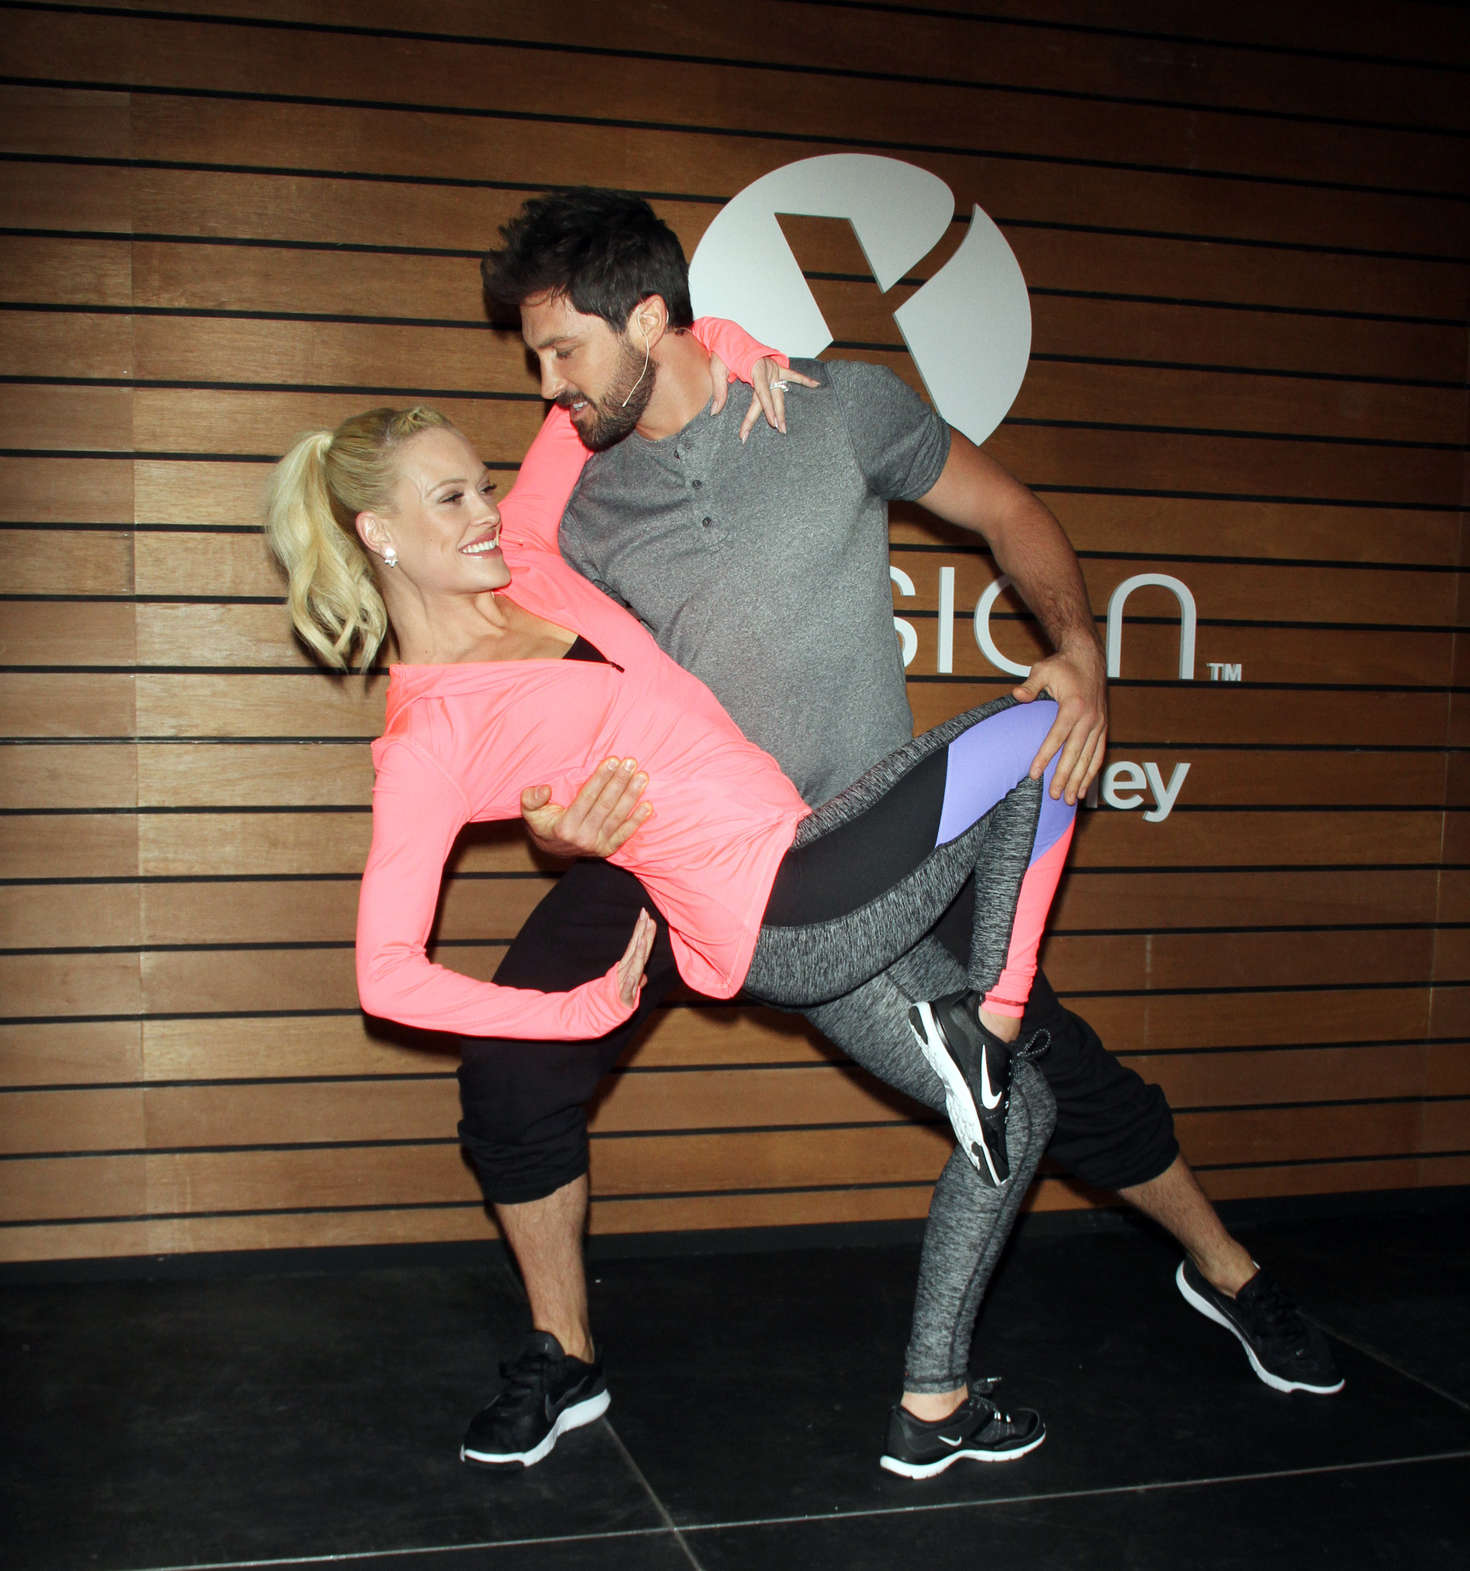 Peta Murgatroyd Teach shoppers Dance Moves To Help Keep Active Fit in New York